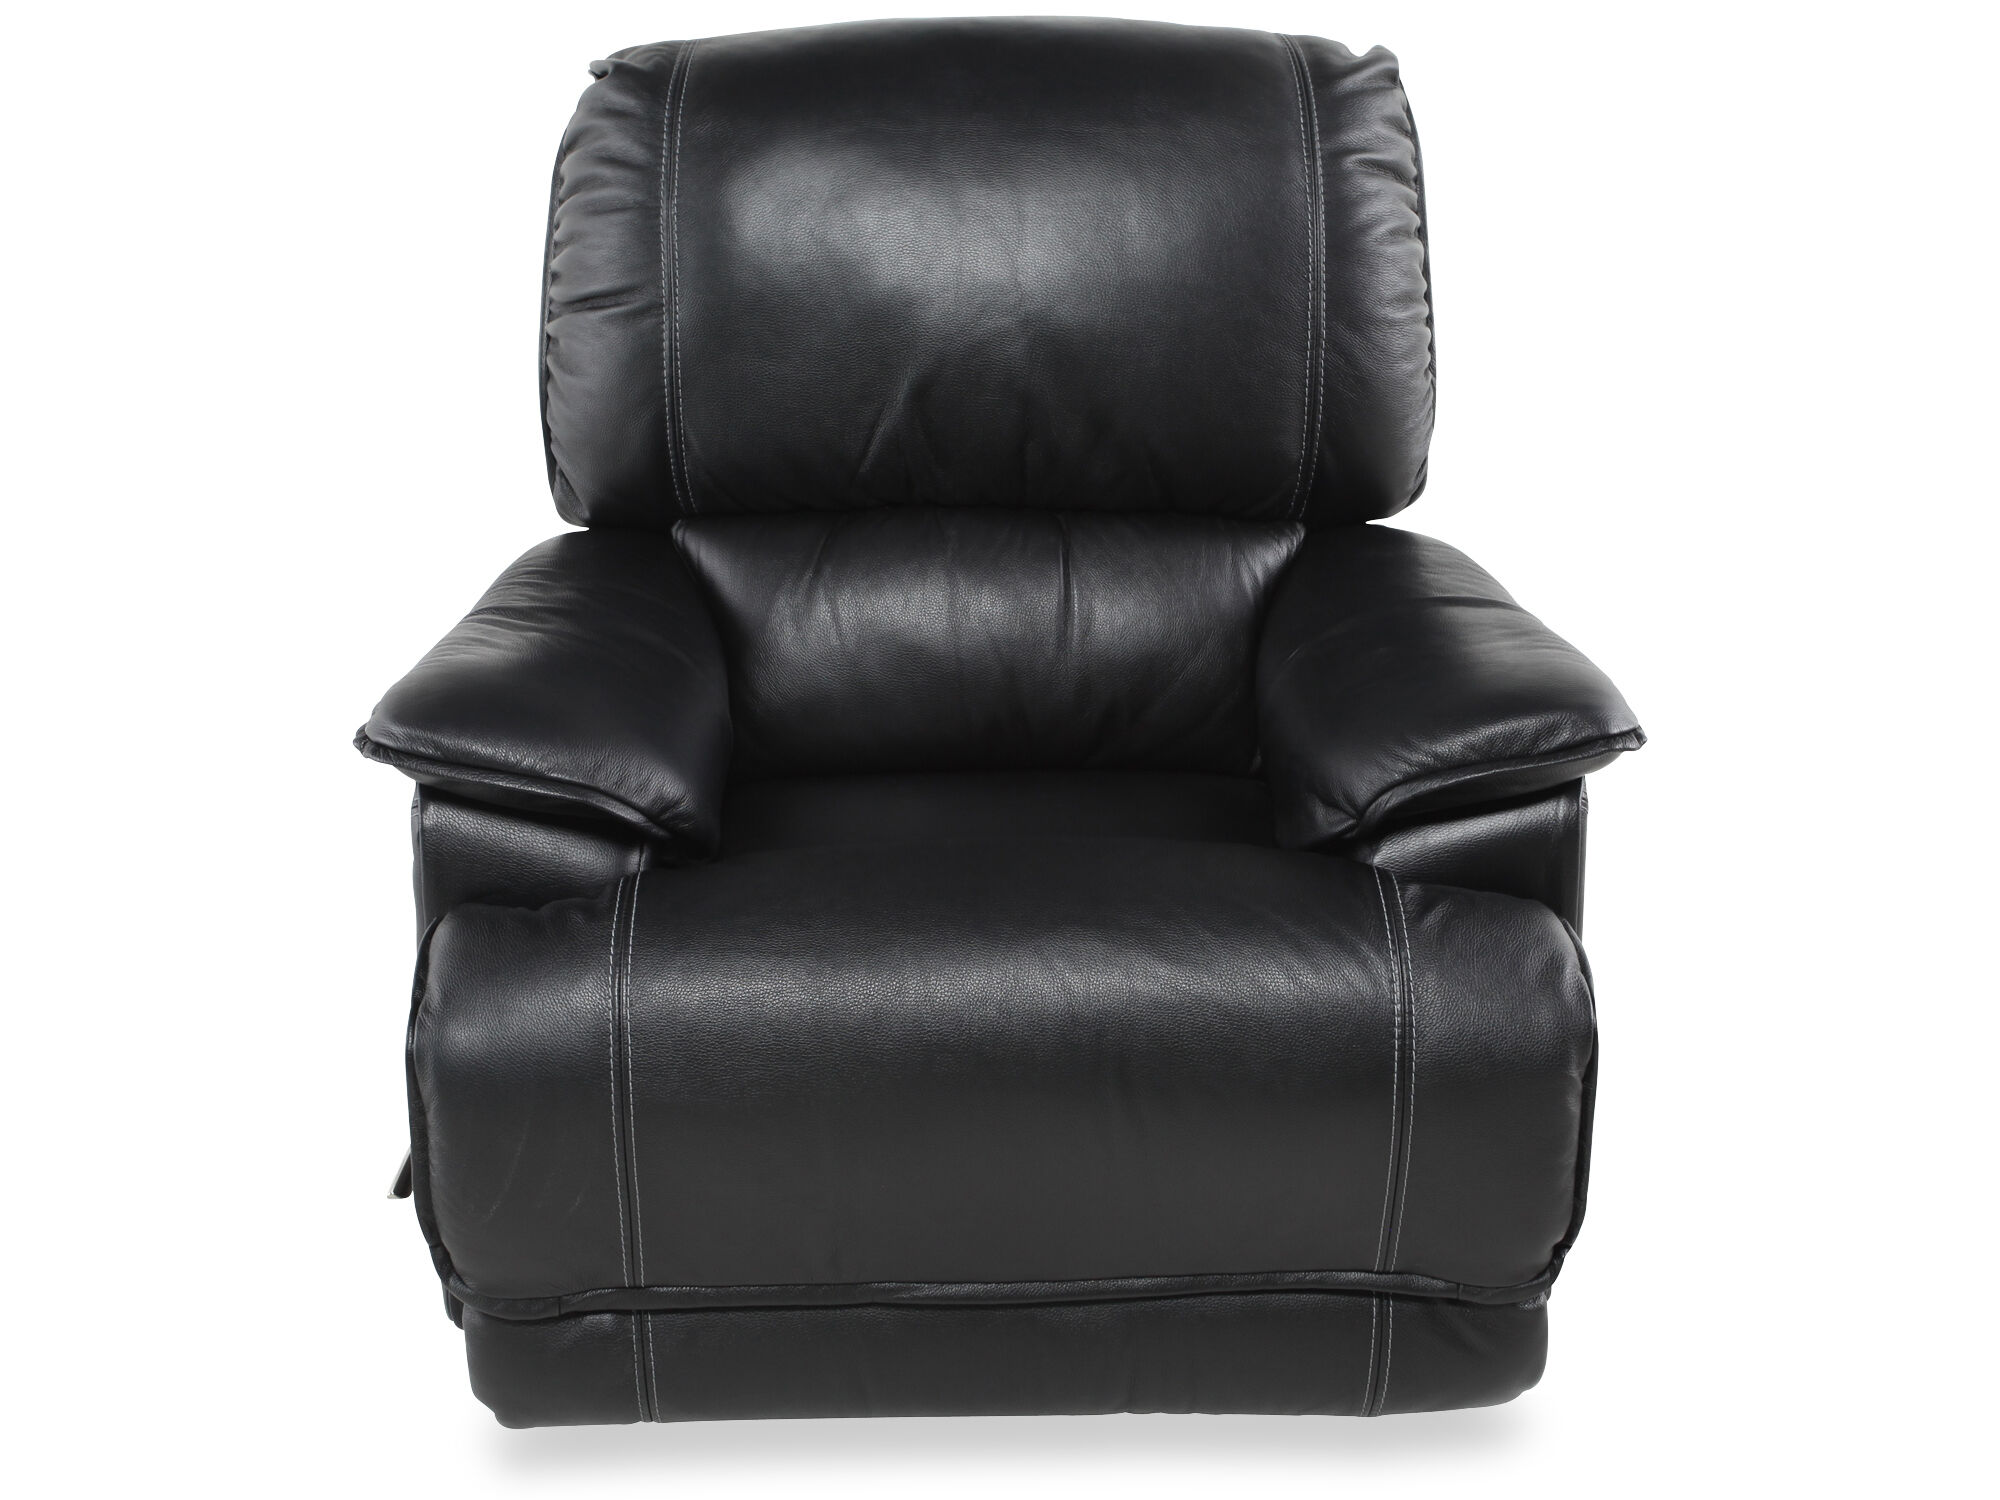 lazboy niagara black leather recliner - Lazy Boy Leather Recliners